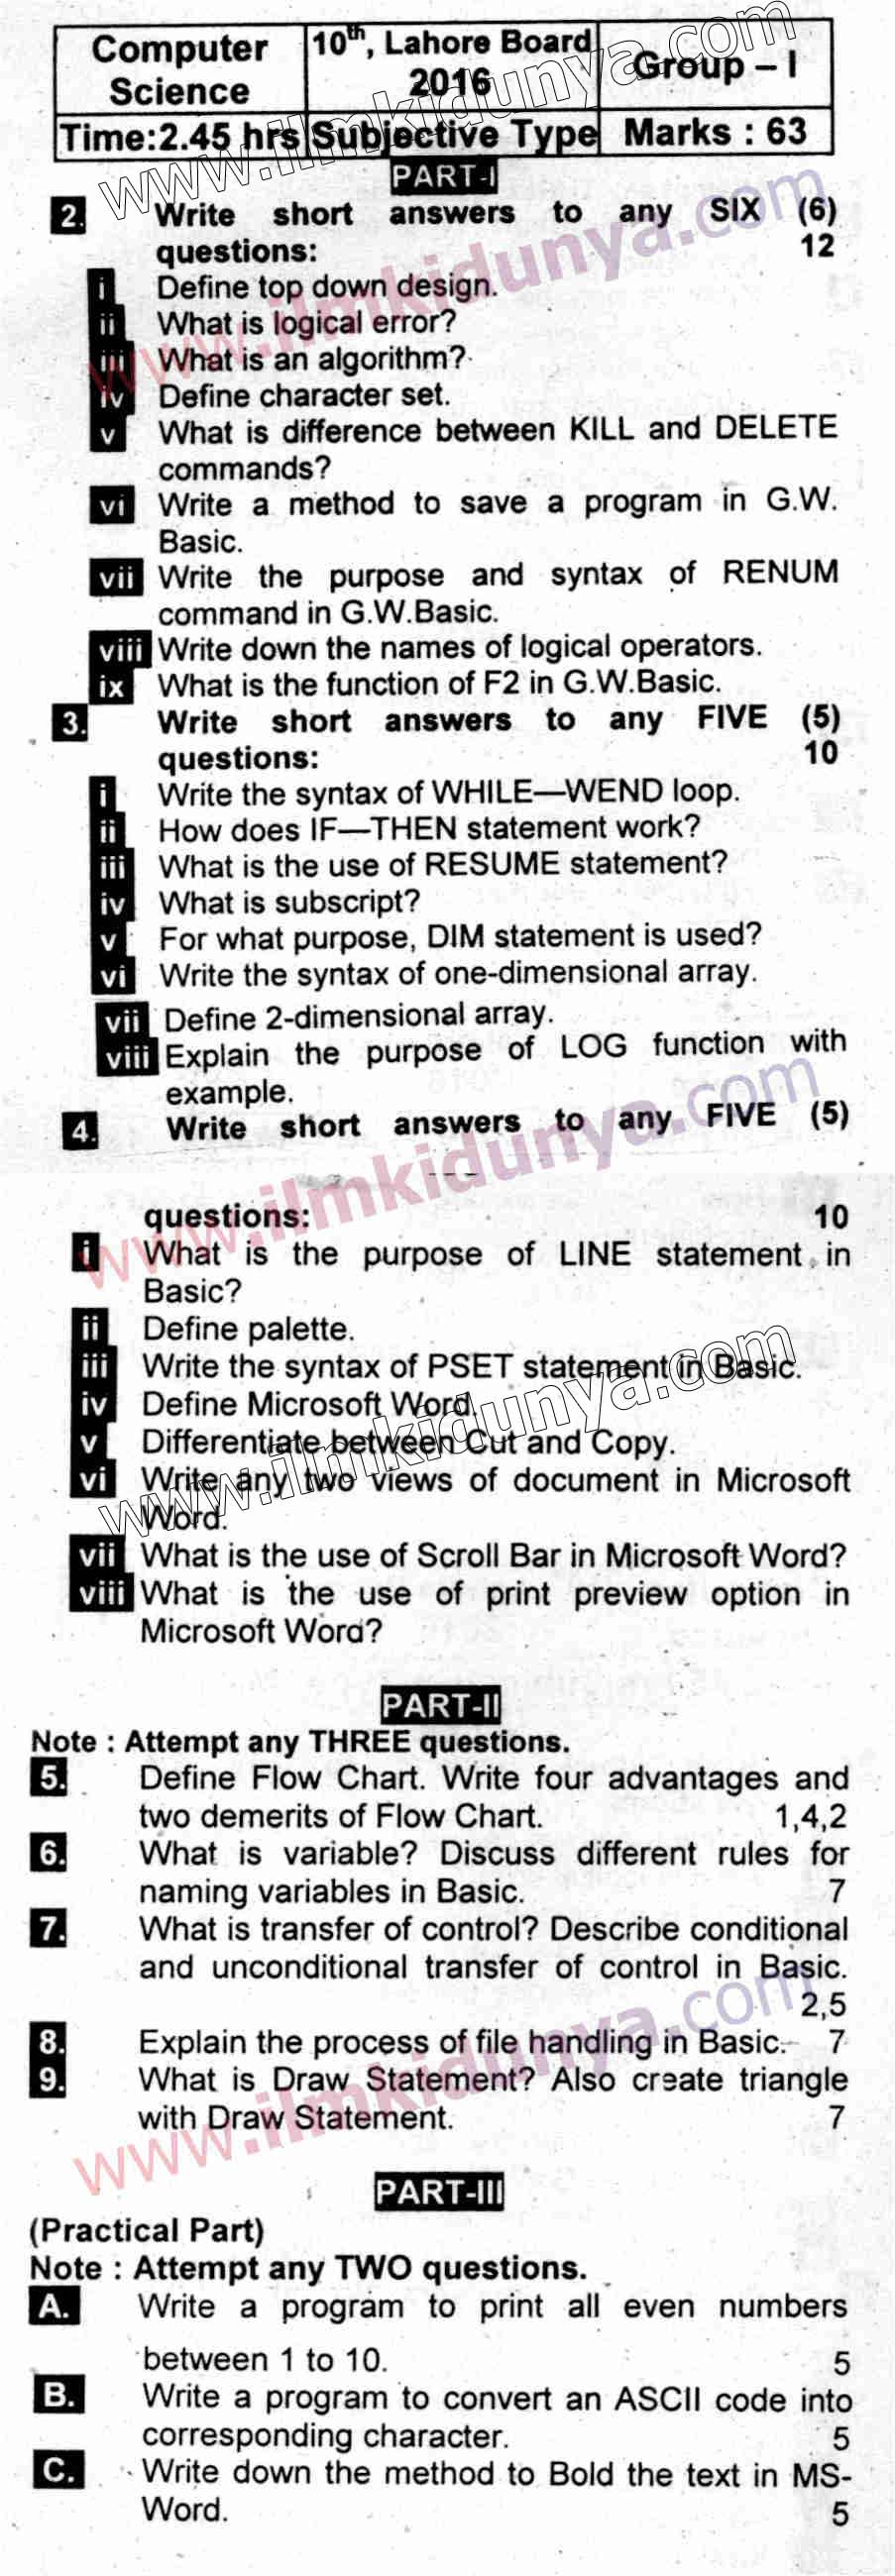 Past Papers 2016 Lahore Board 10th Class Computer Science